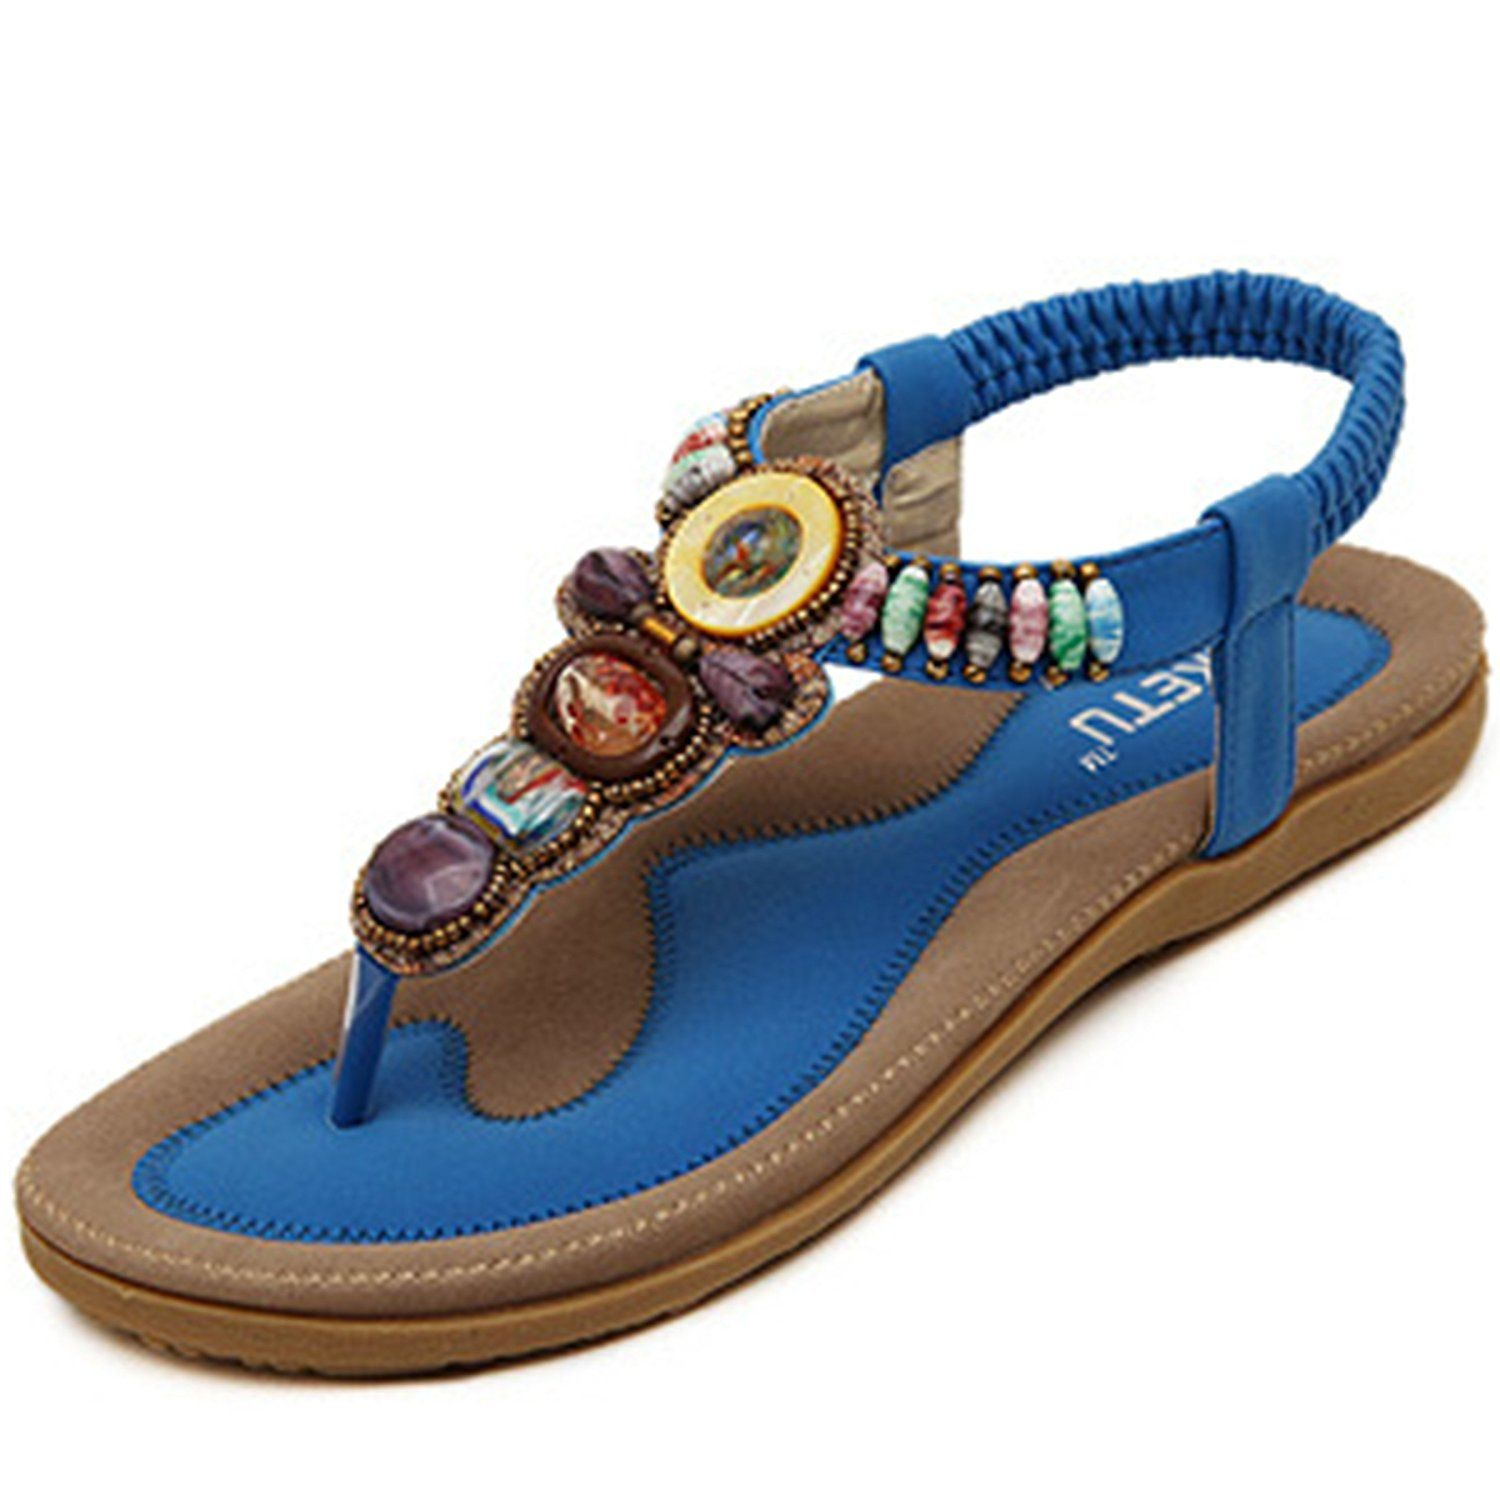 0babb958353e PAERLAN Women s Fashion Summer Bohemian Beads Flip Flops Sandals Beach Shoes  -- You can get